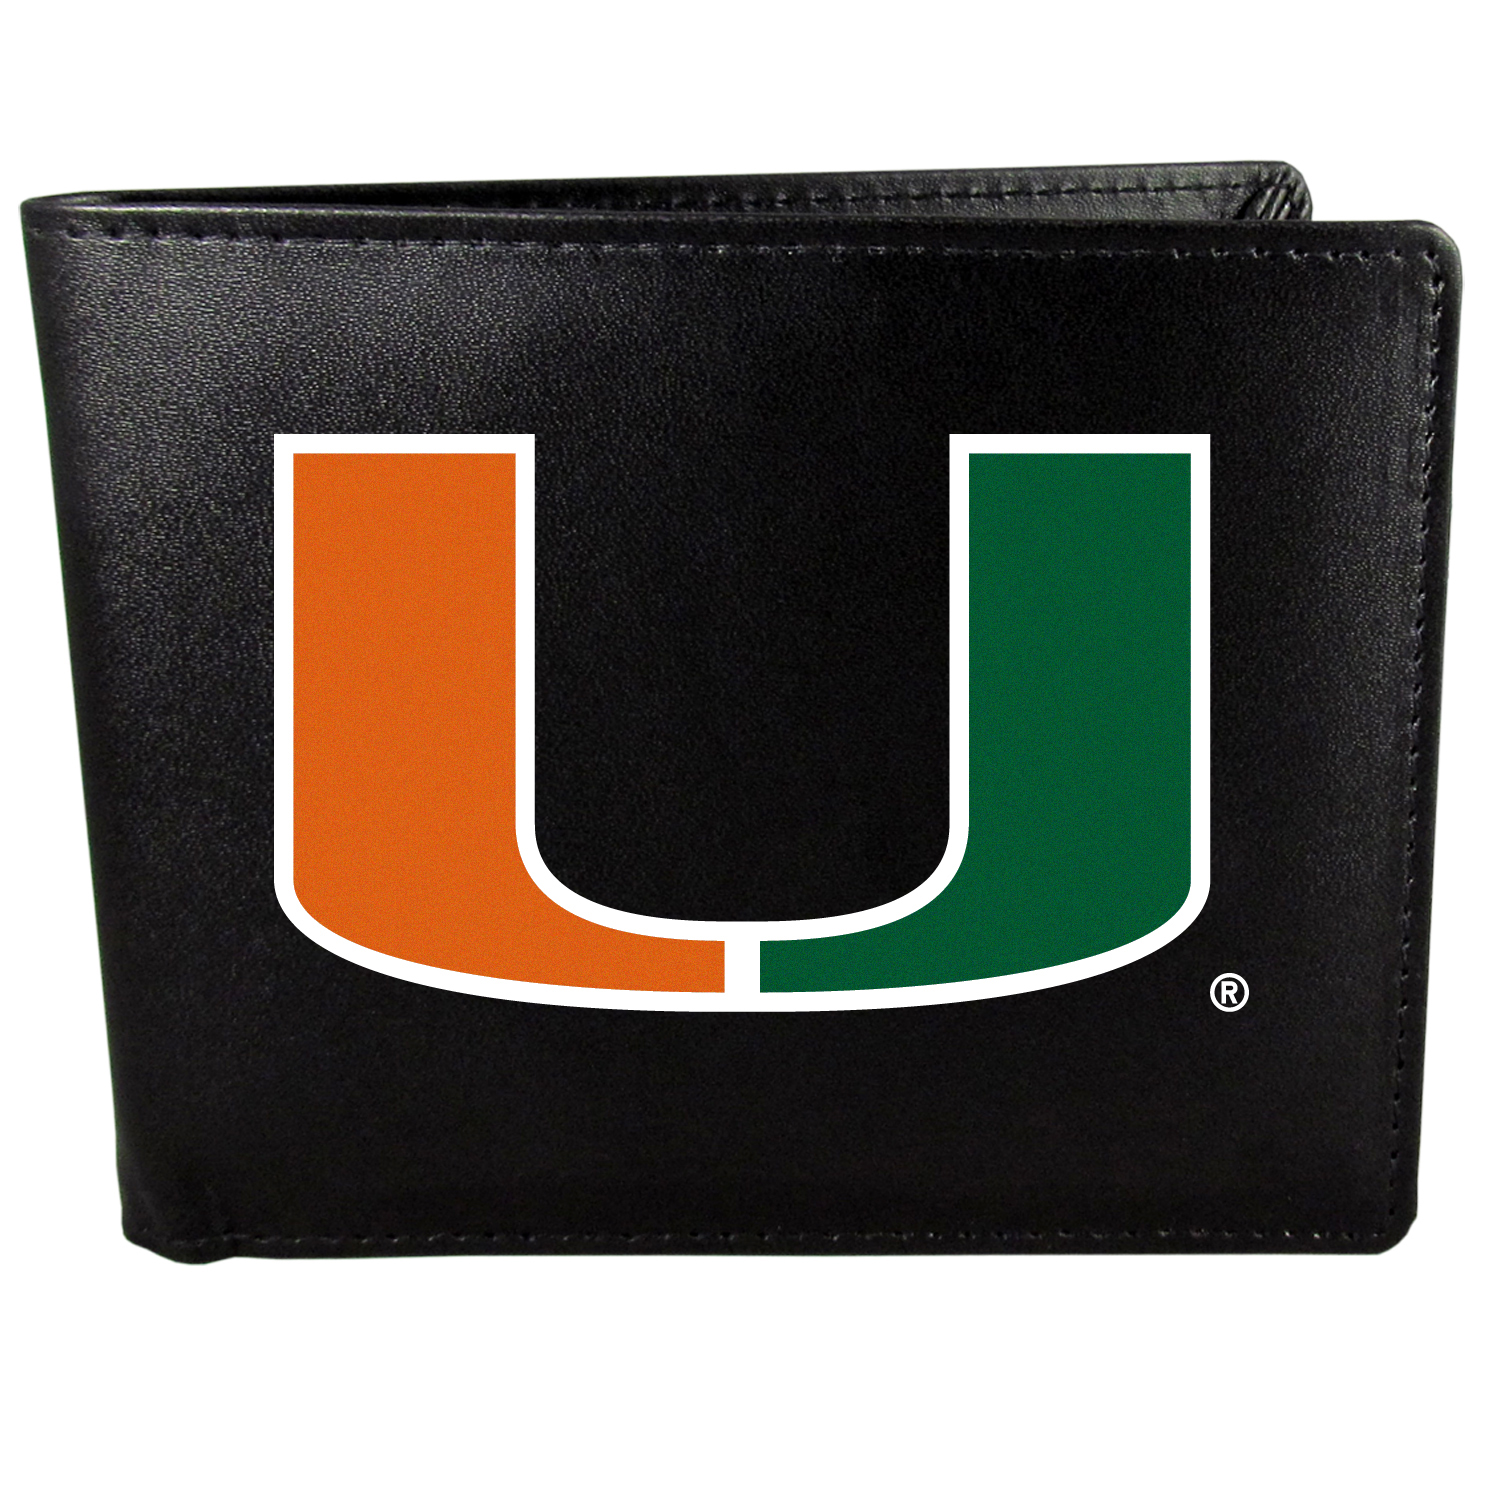 Miami Hurricanes Bi-fold Wallet Large Logo - Sports fans do not have to sacrifice style with this classic bi-fold wallet that sports the Miami Hurricanes extra large logo. This men's fashion accessory has a leather grain look and expert craftmanship for a quality wallet at a great price. The wallet features inner credit card slots, windowed ID slot and a large billfold pocket. The front of the wallet features a printed team logo.